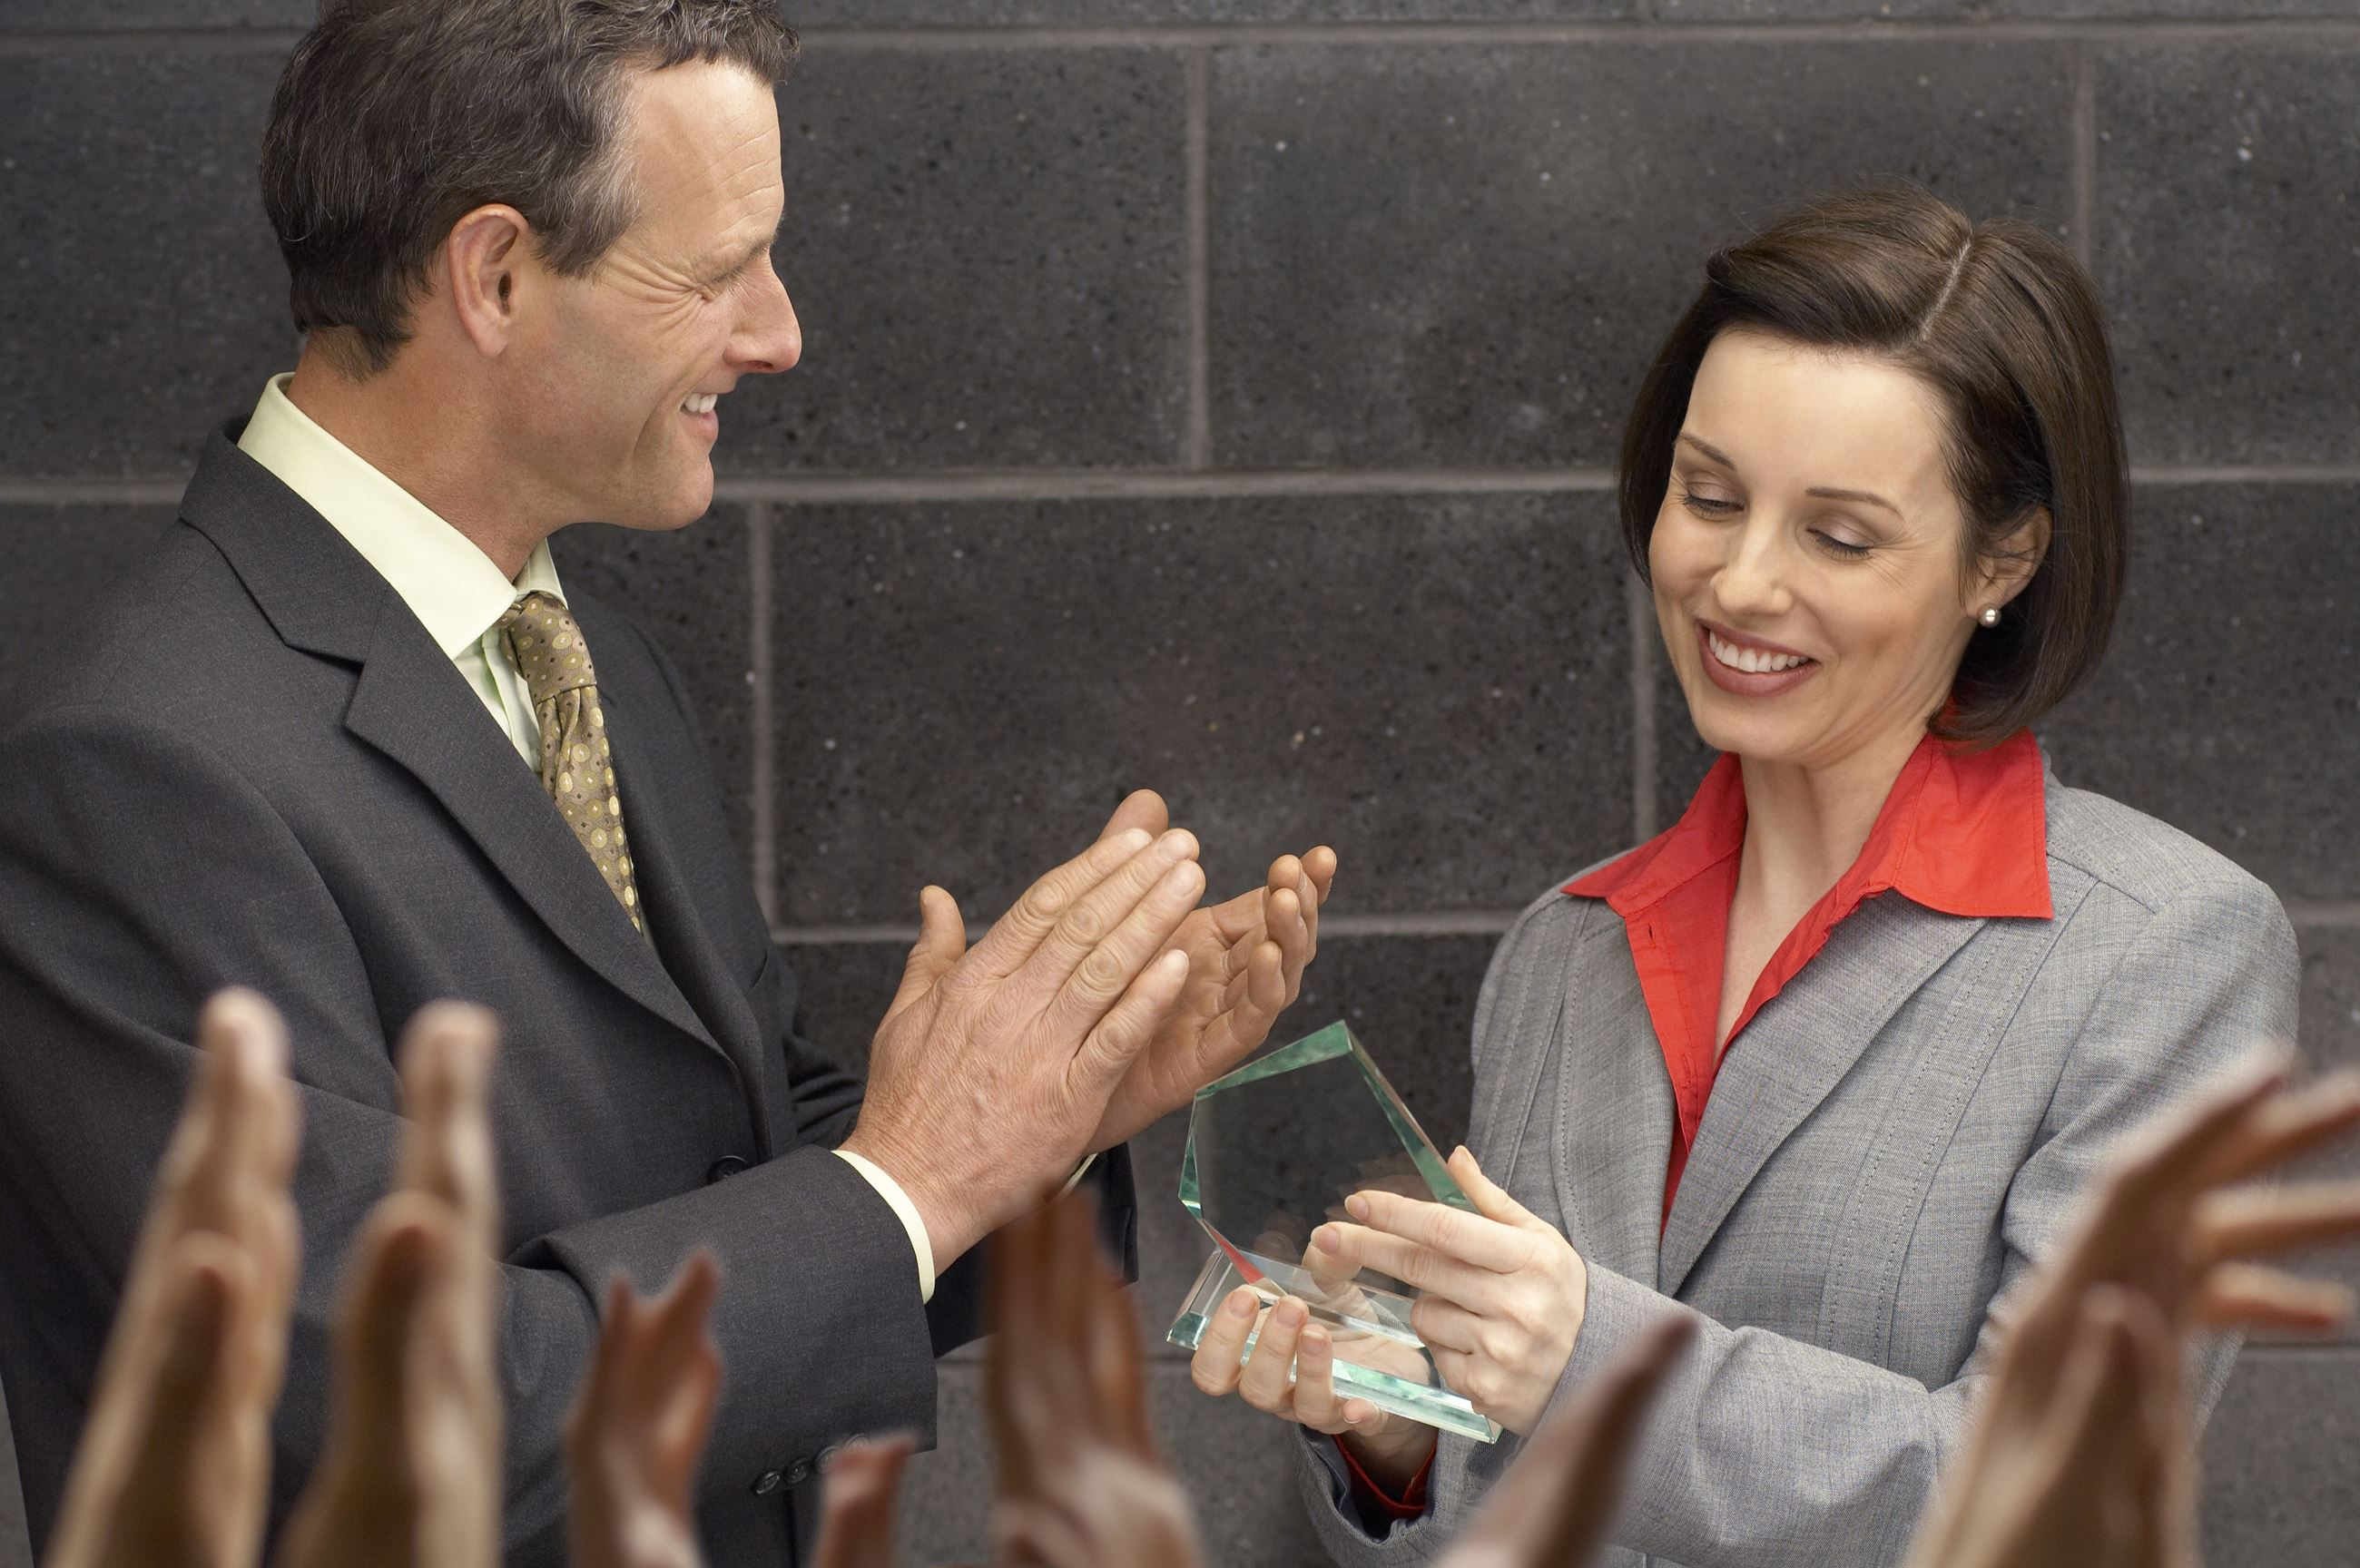 Man applauding a woman that has received an award